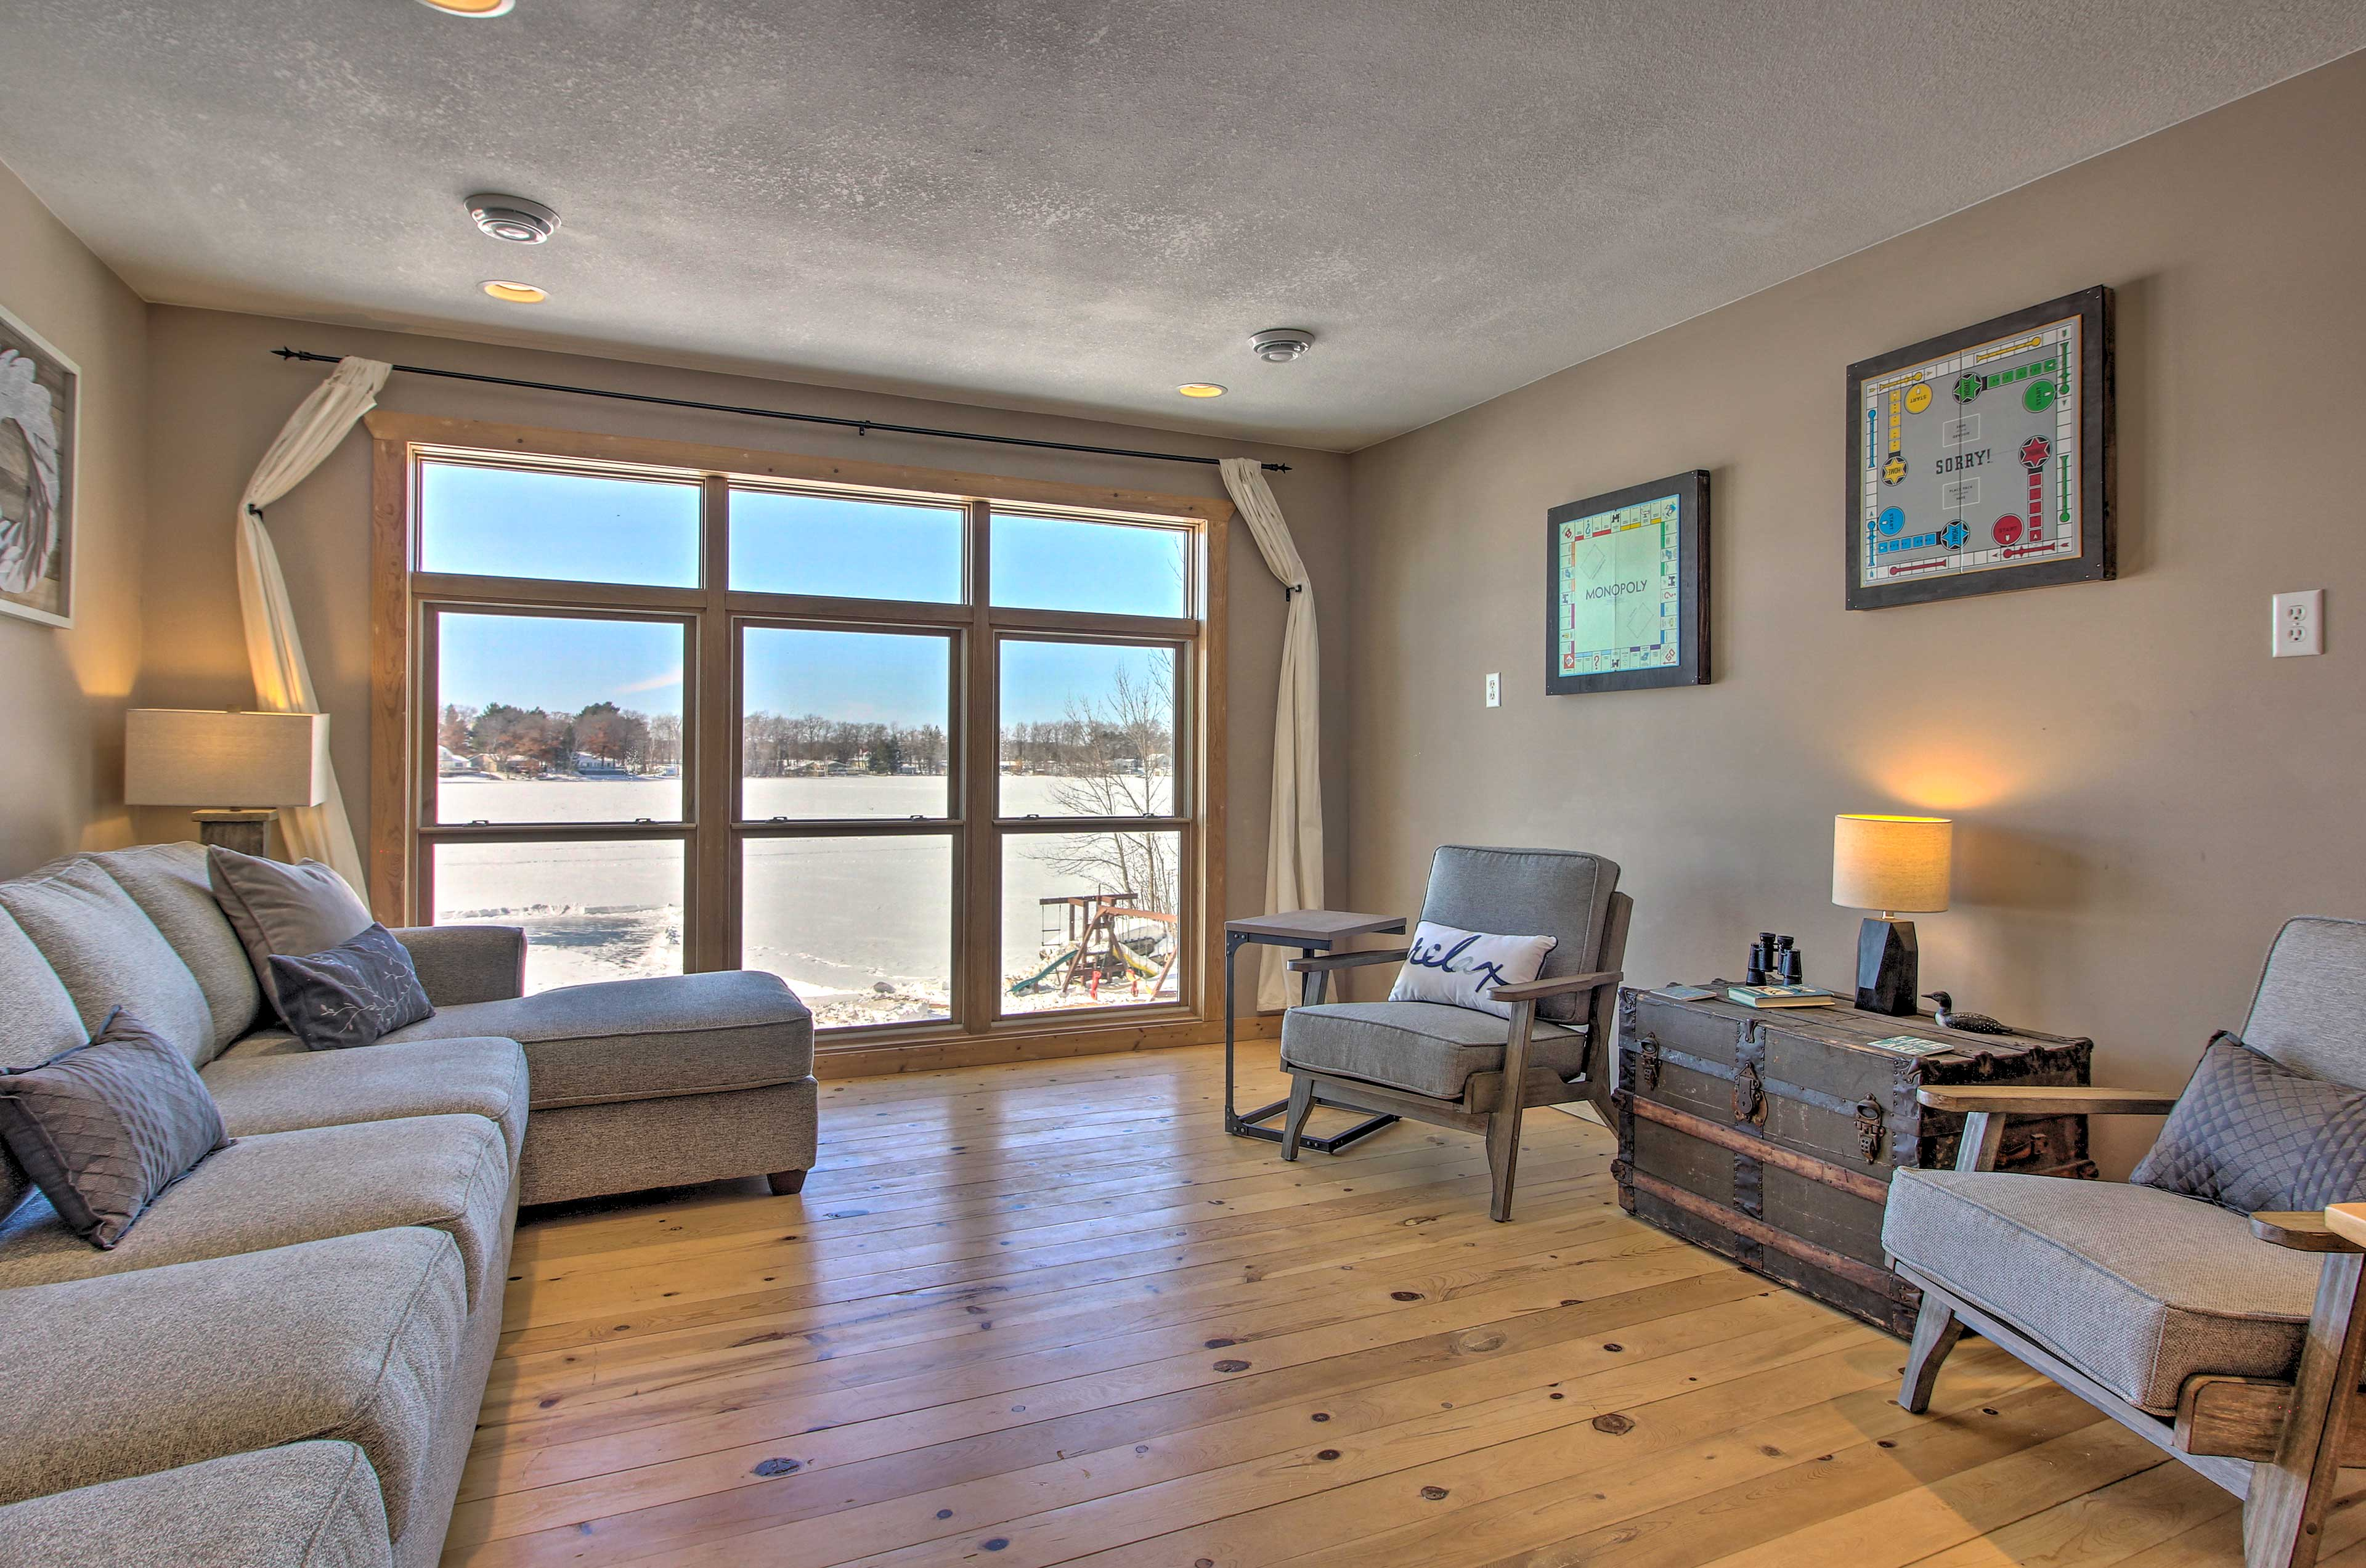 The second living area features incredible views through the longview windows.